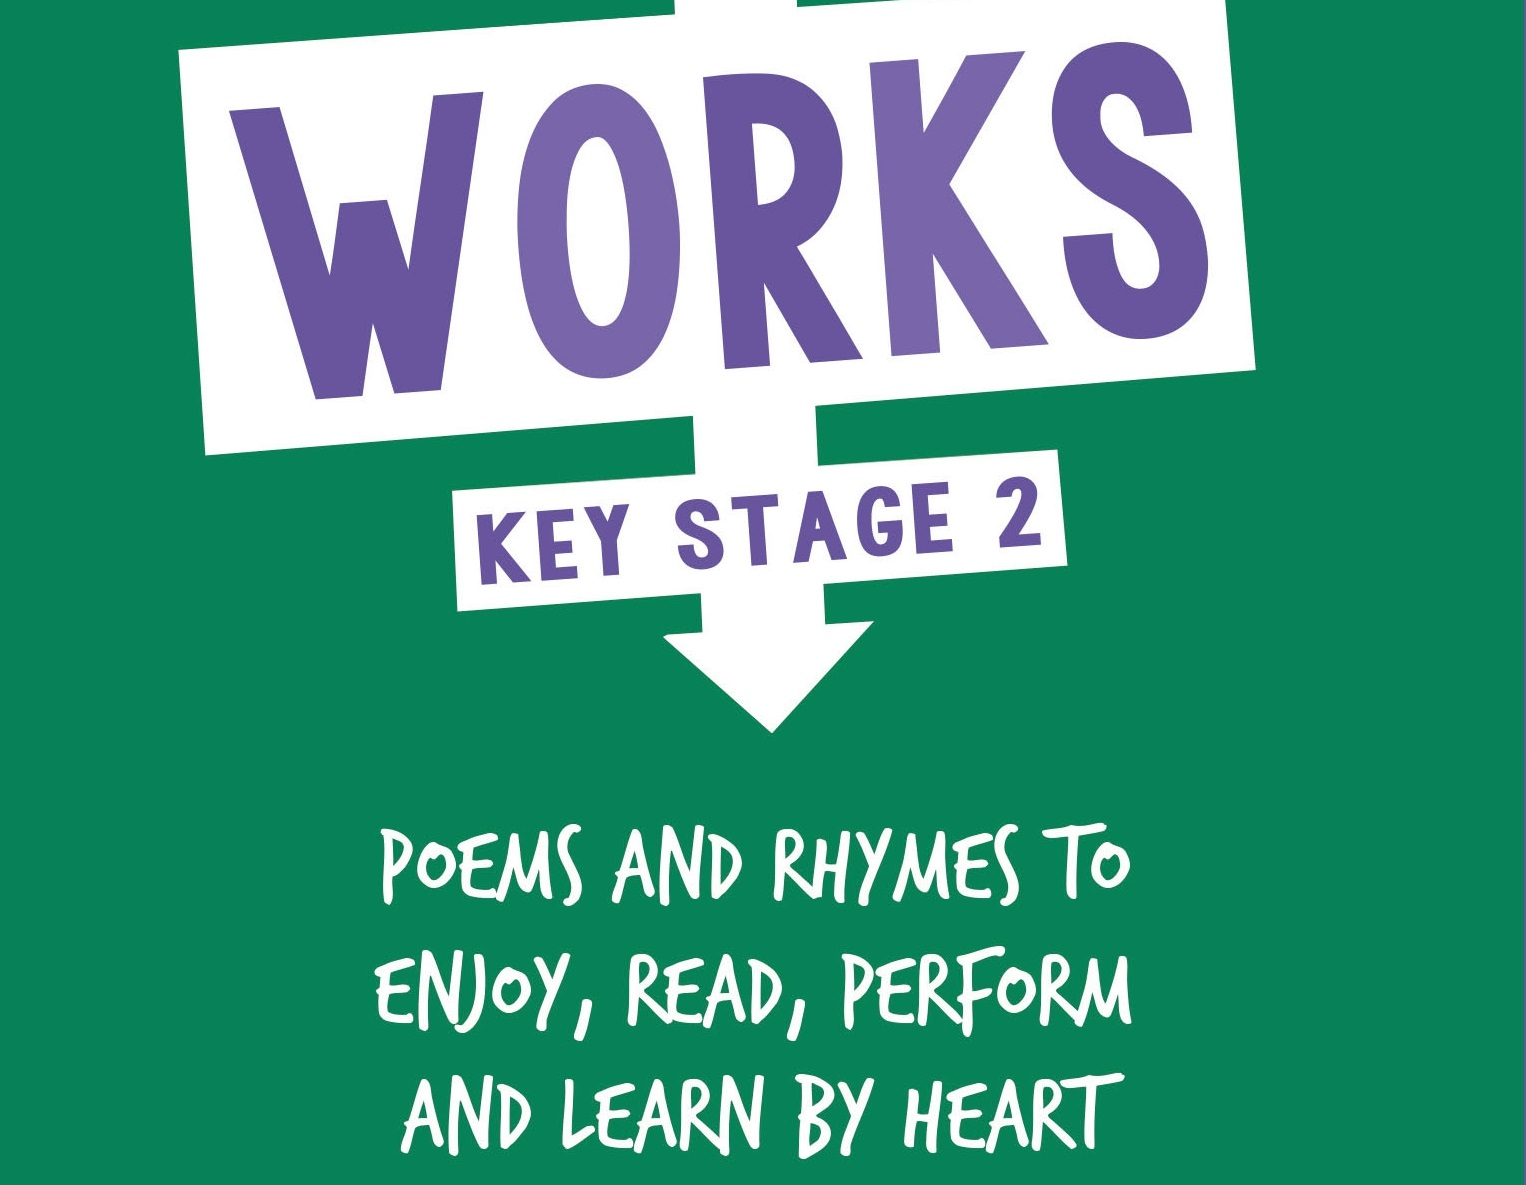 key stage 2 poems and rhymes